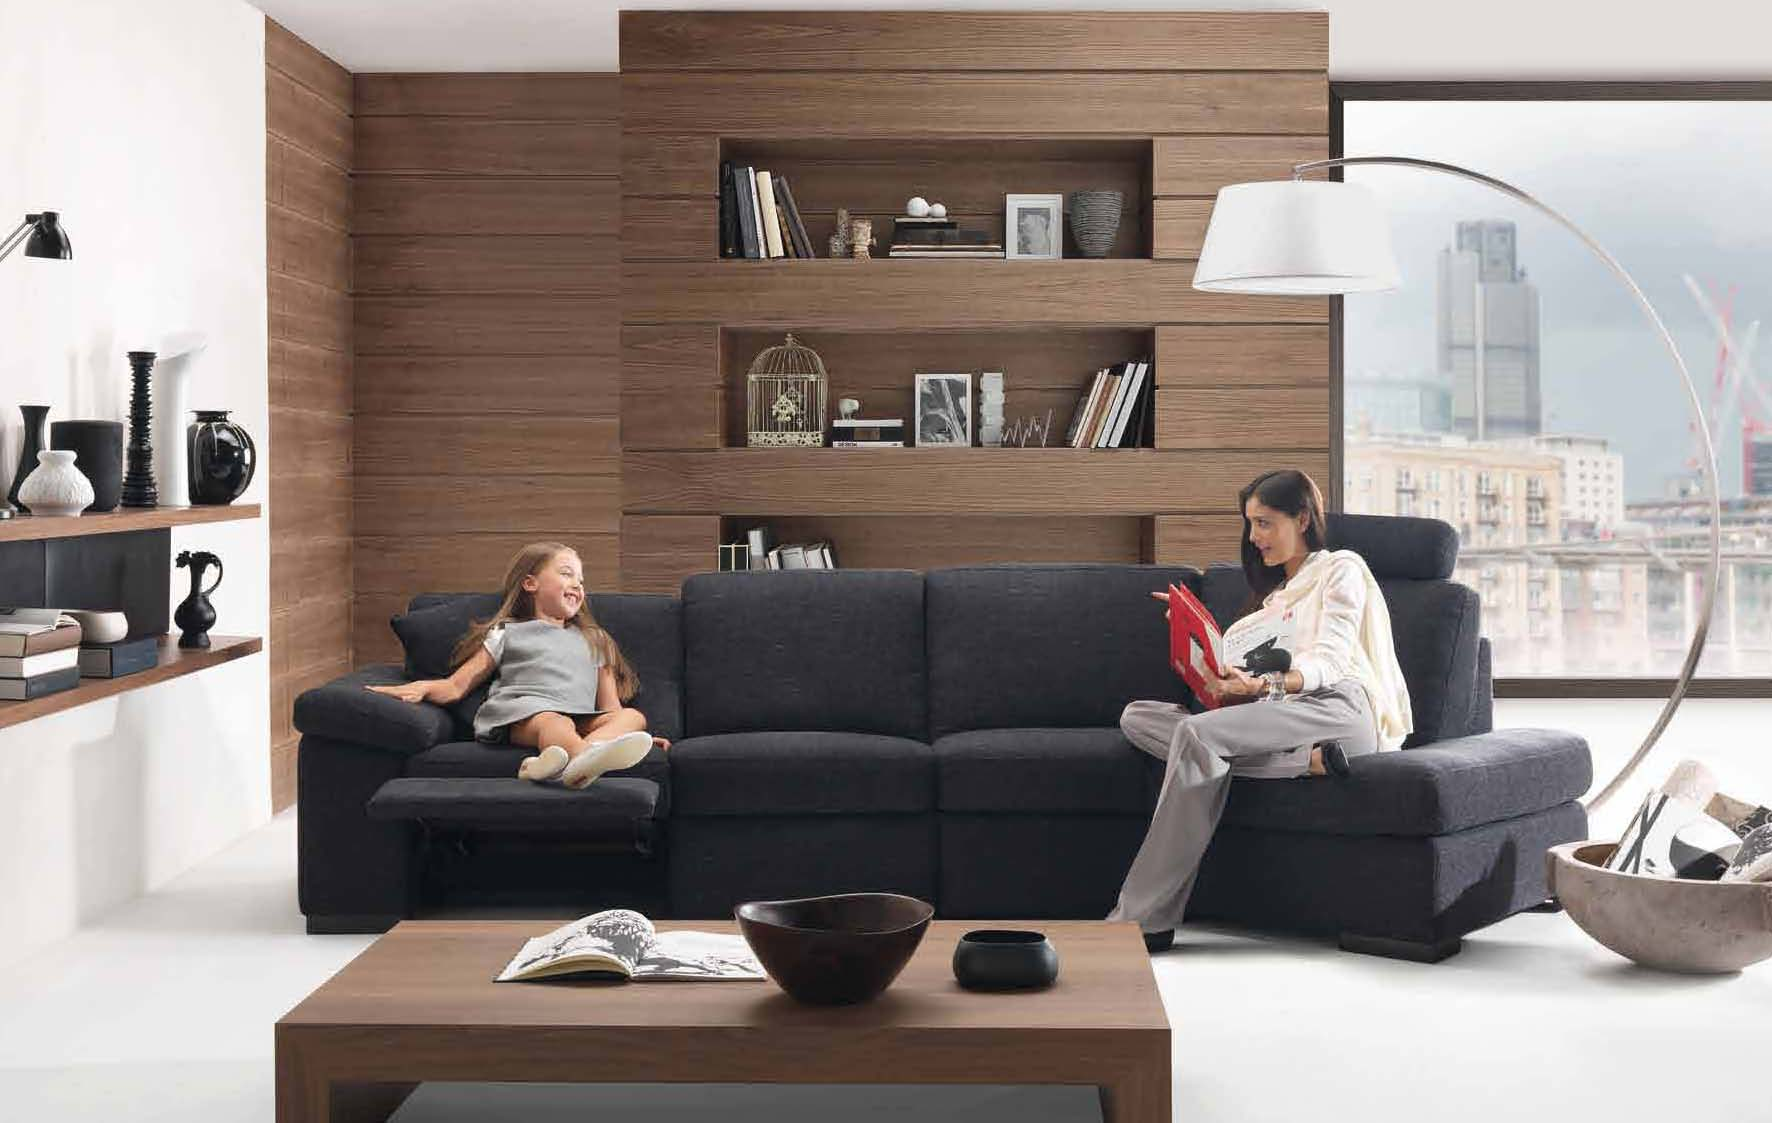 Living room styles 2010 by natuzzi for Living room interior